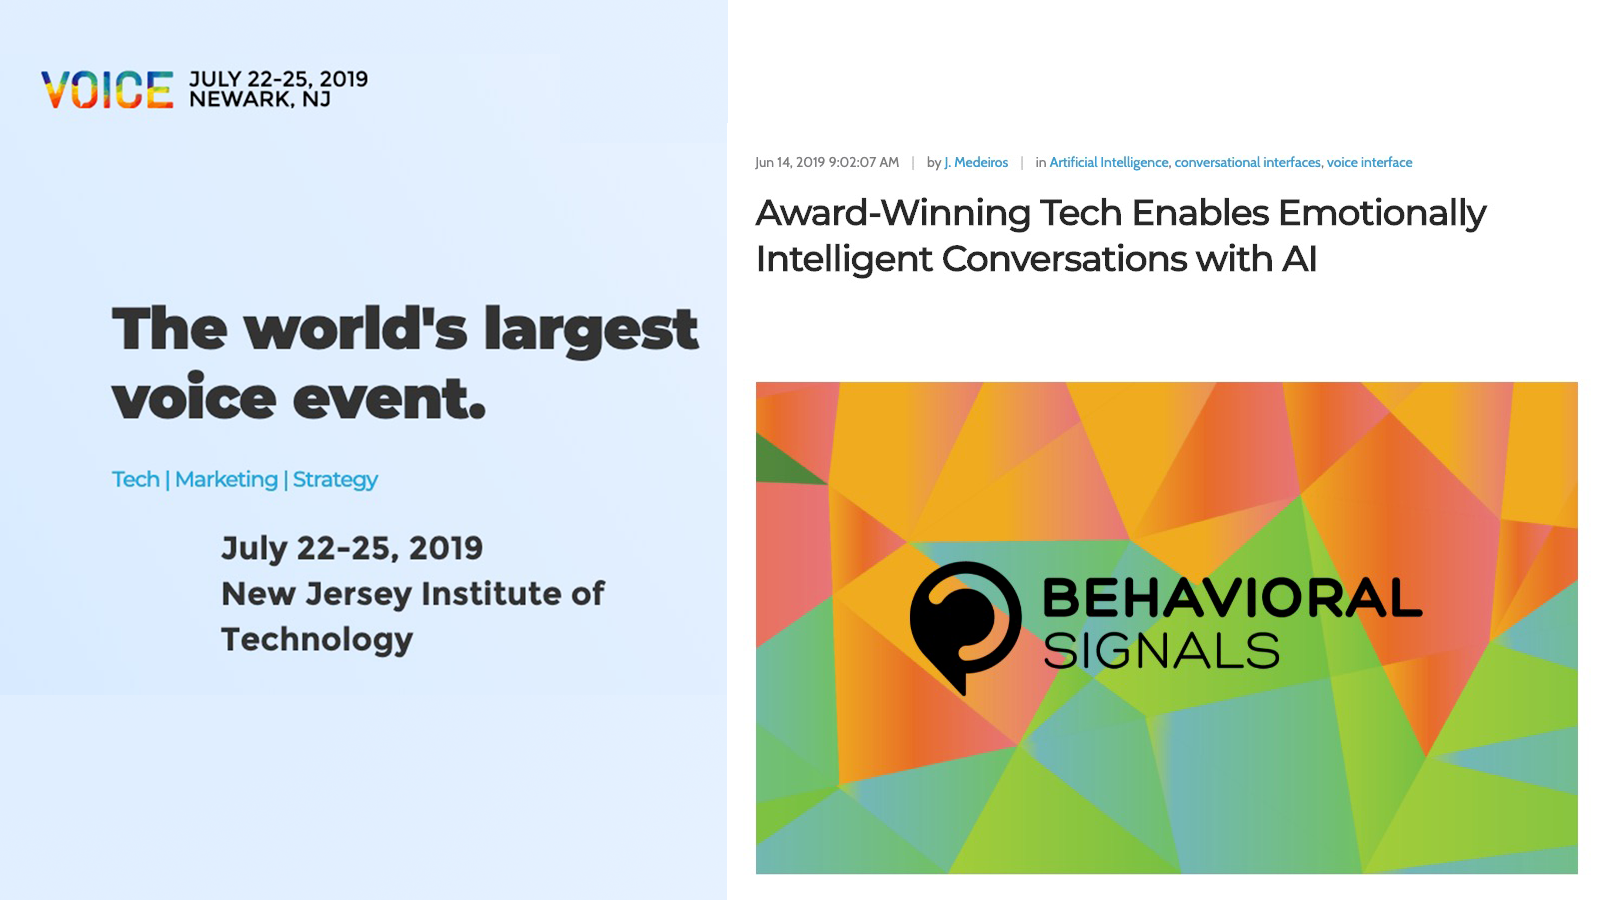 Award-Winning Tech Enables Emotionally Intelligent Conversations with AI - VOICE Summit